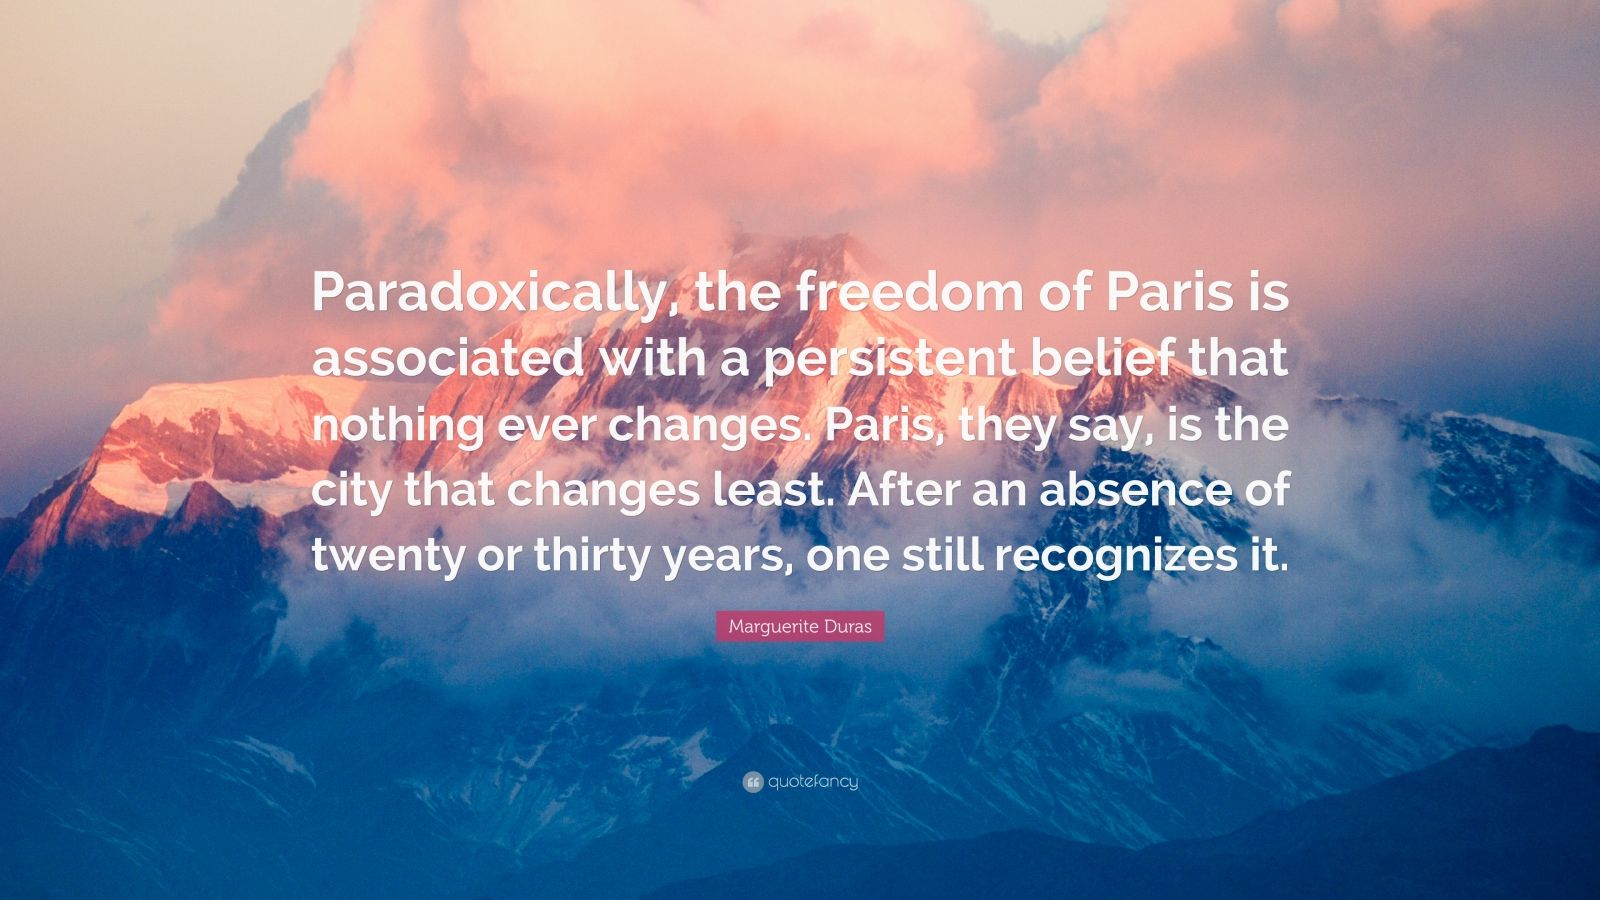 """Marguerite Duras Quote: """"Paradoxically, the freedom of Paris is associated with a persistent belief that nothing ever changes. Paris, they say, is the city that changes least. After an absence of twenty or thirty years, one still recognizes it."""""""